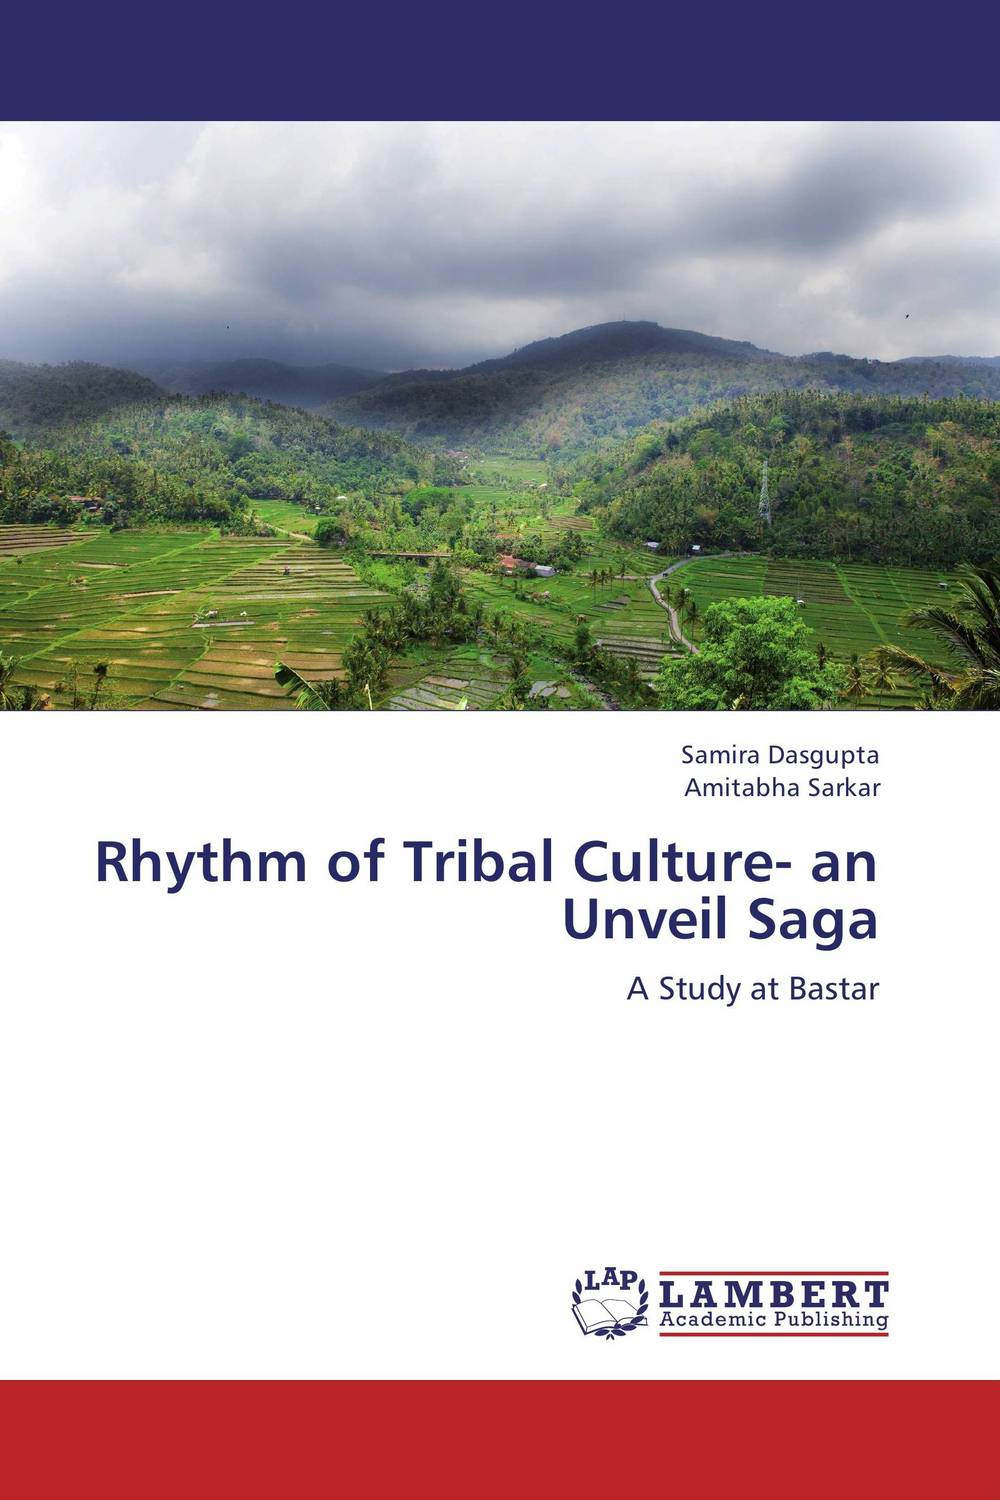 Rhythm of Tribal Culture- an Unveil Saga